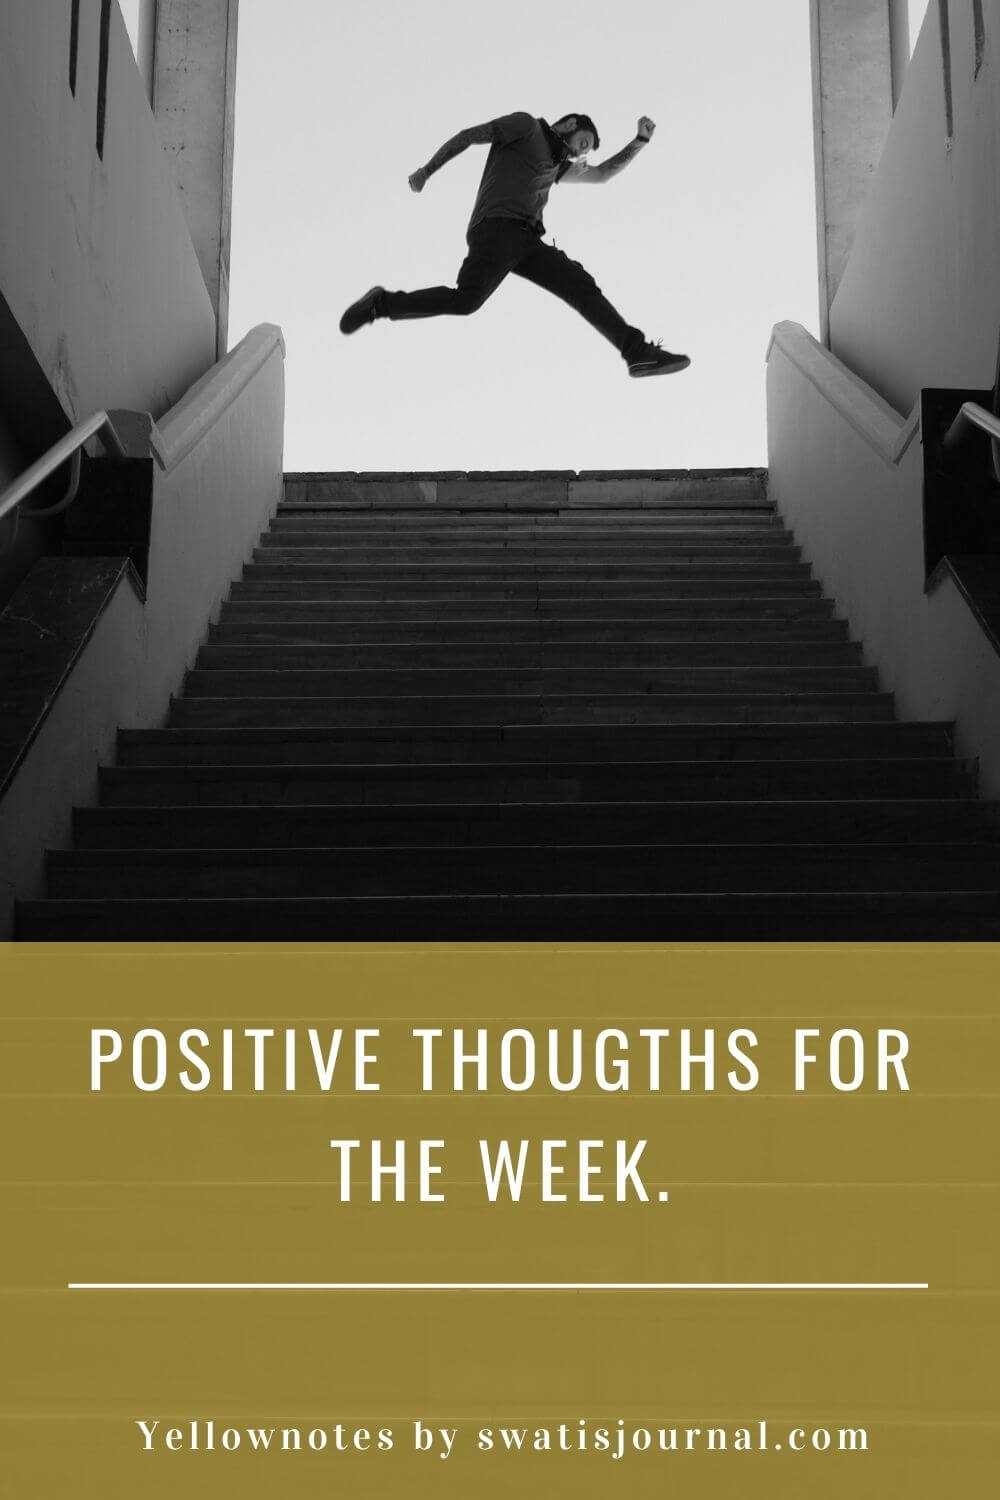 Yellownotes – Daily Quotes | Quote of the Week | March 2020 | Week 01 0 (0)